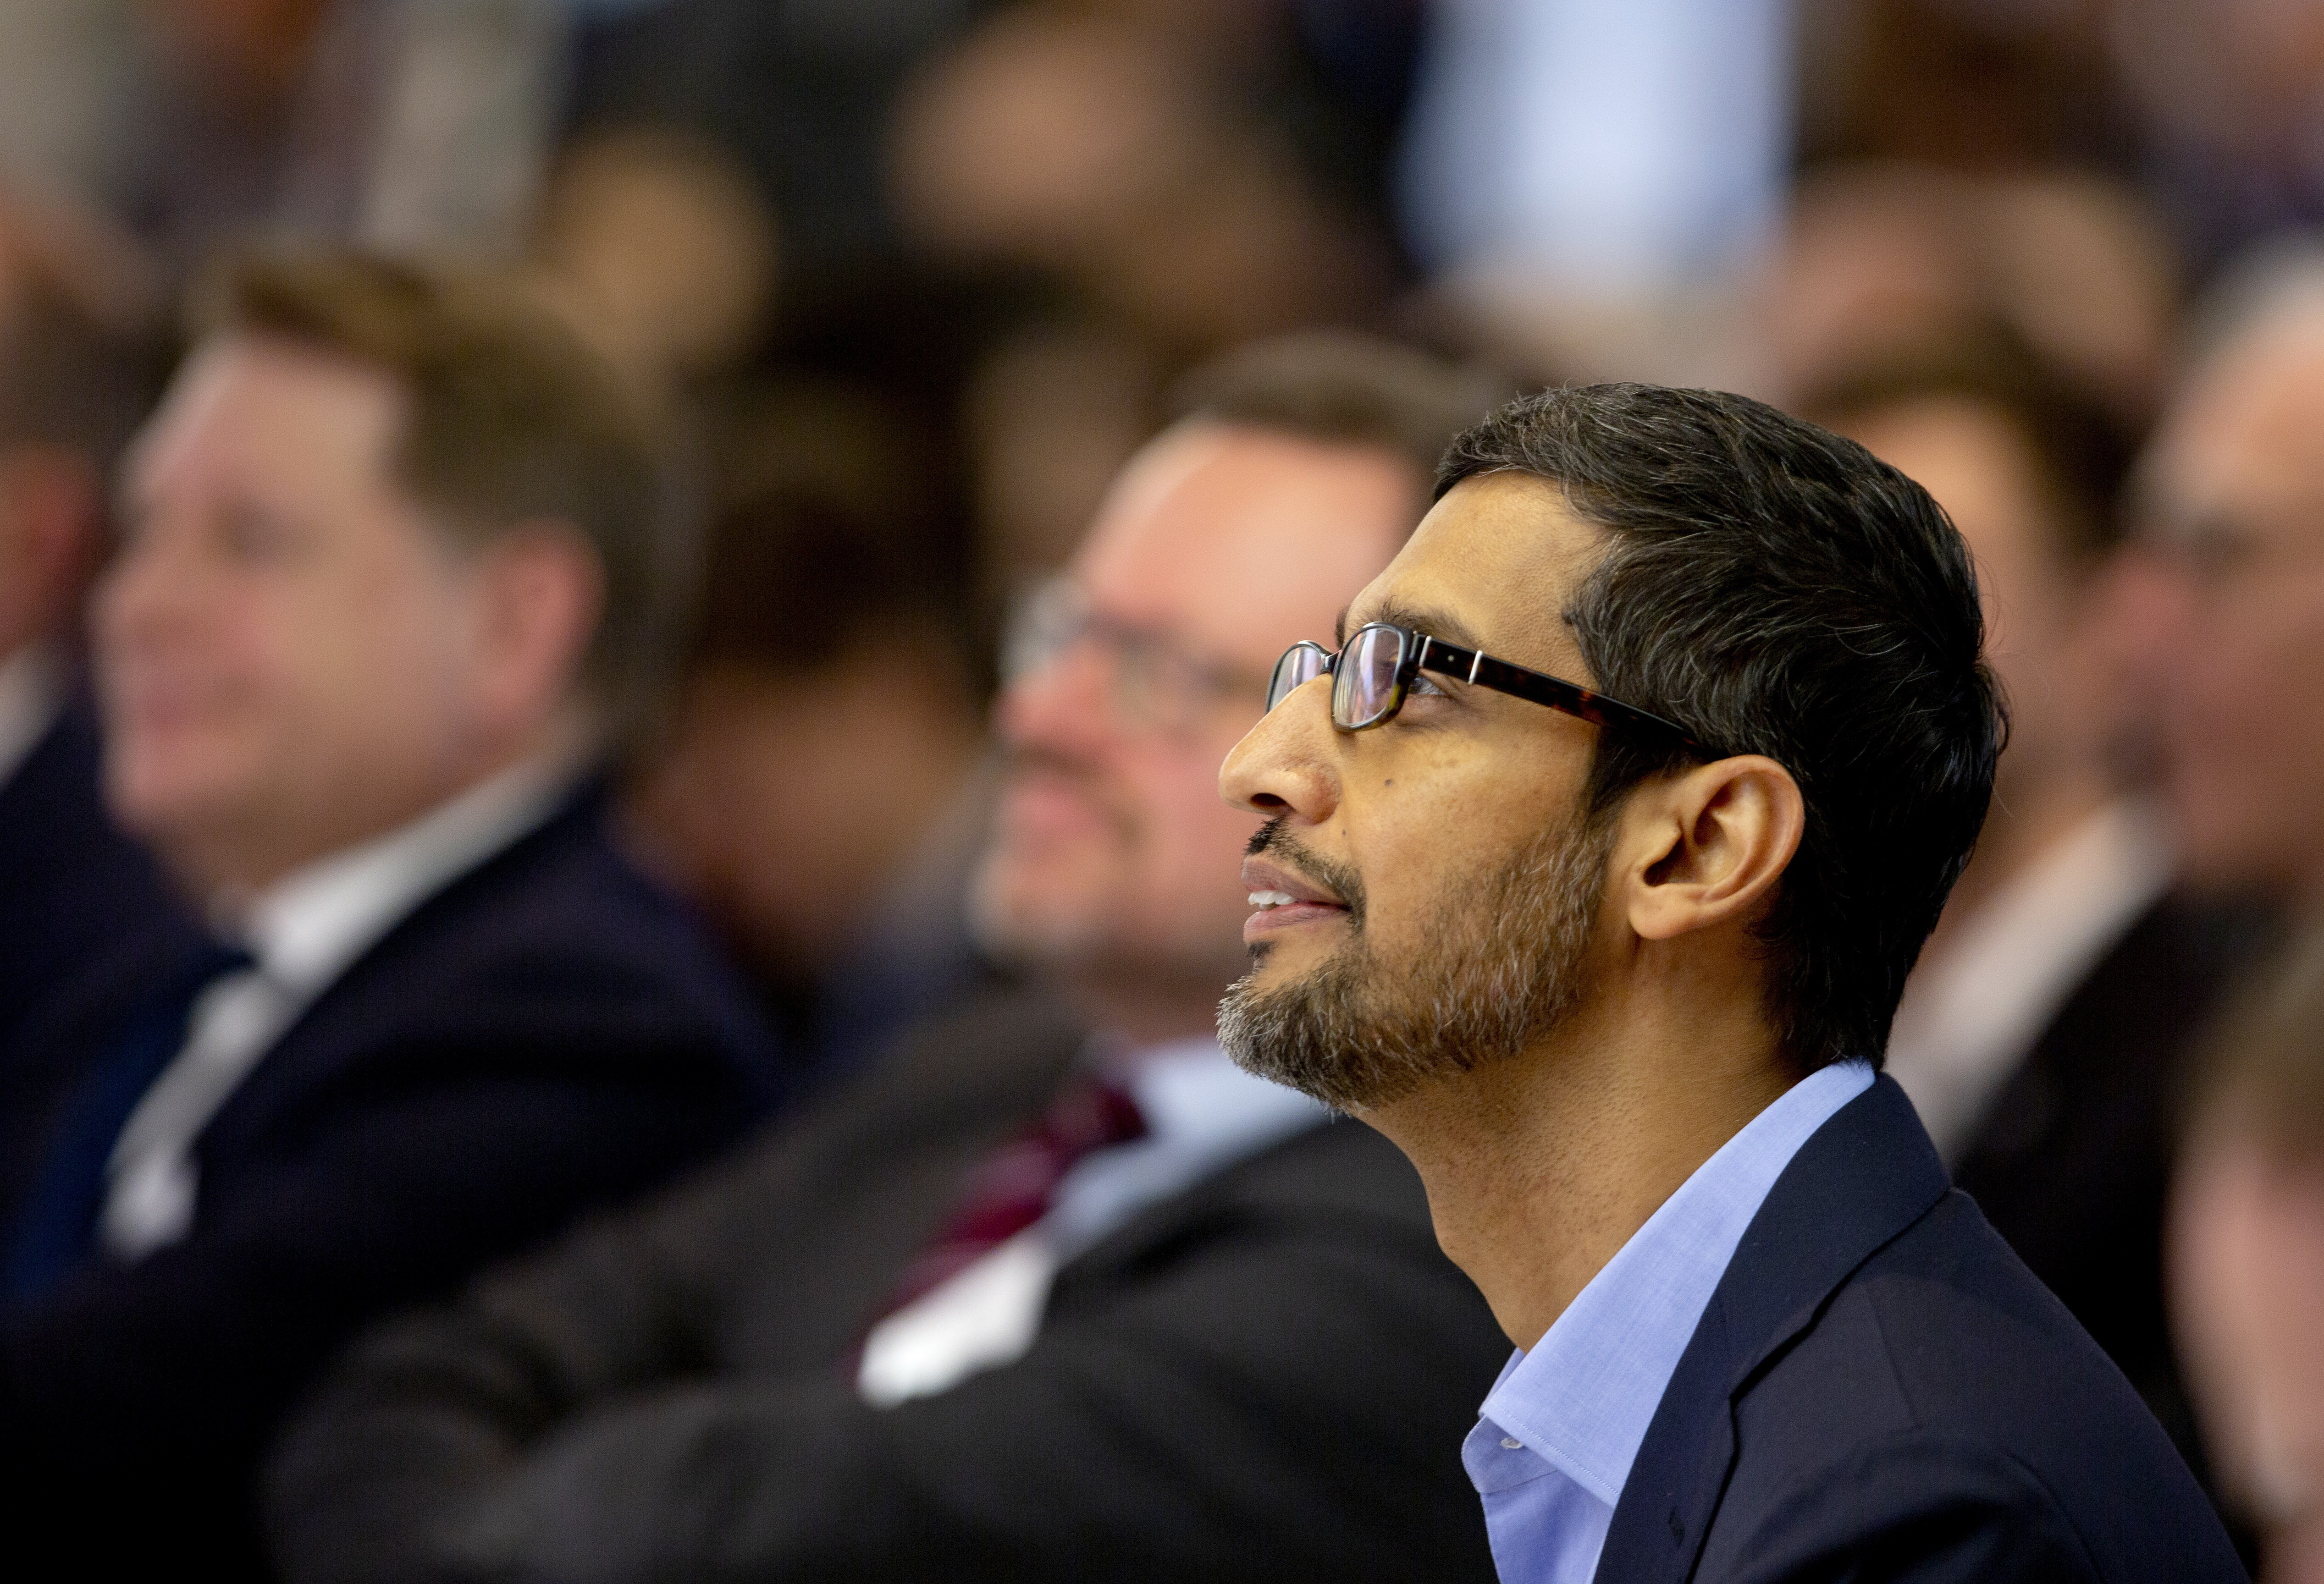 Google's chief executive Sundar Pichai waits to address the audience during an event on artificial intelligence at the Square in Brussels, Monday, Jan. 20, 2020. Google's chief executive called Monday for a balanced approach to regulating artificial intelligence, telling a European audience that the technology brings benefits but also negative consequences. (AP Photo/Virginia Mayo)